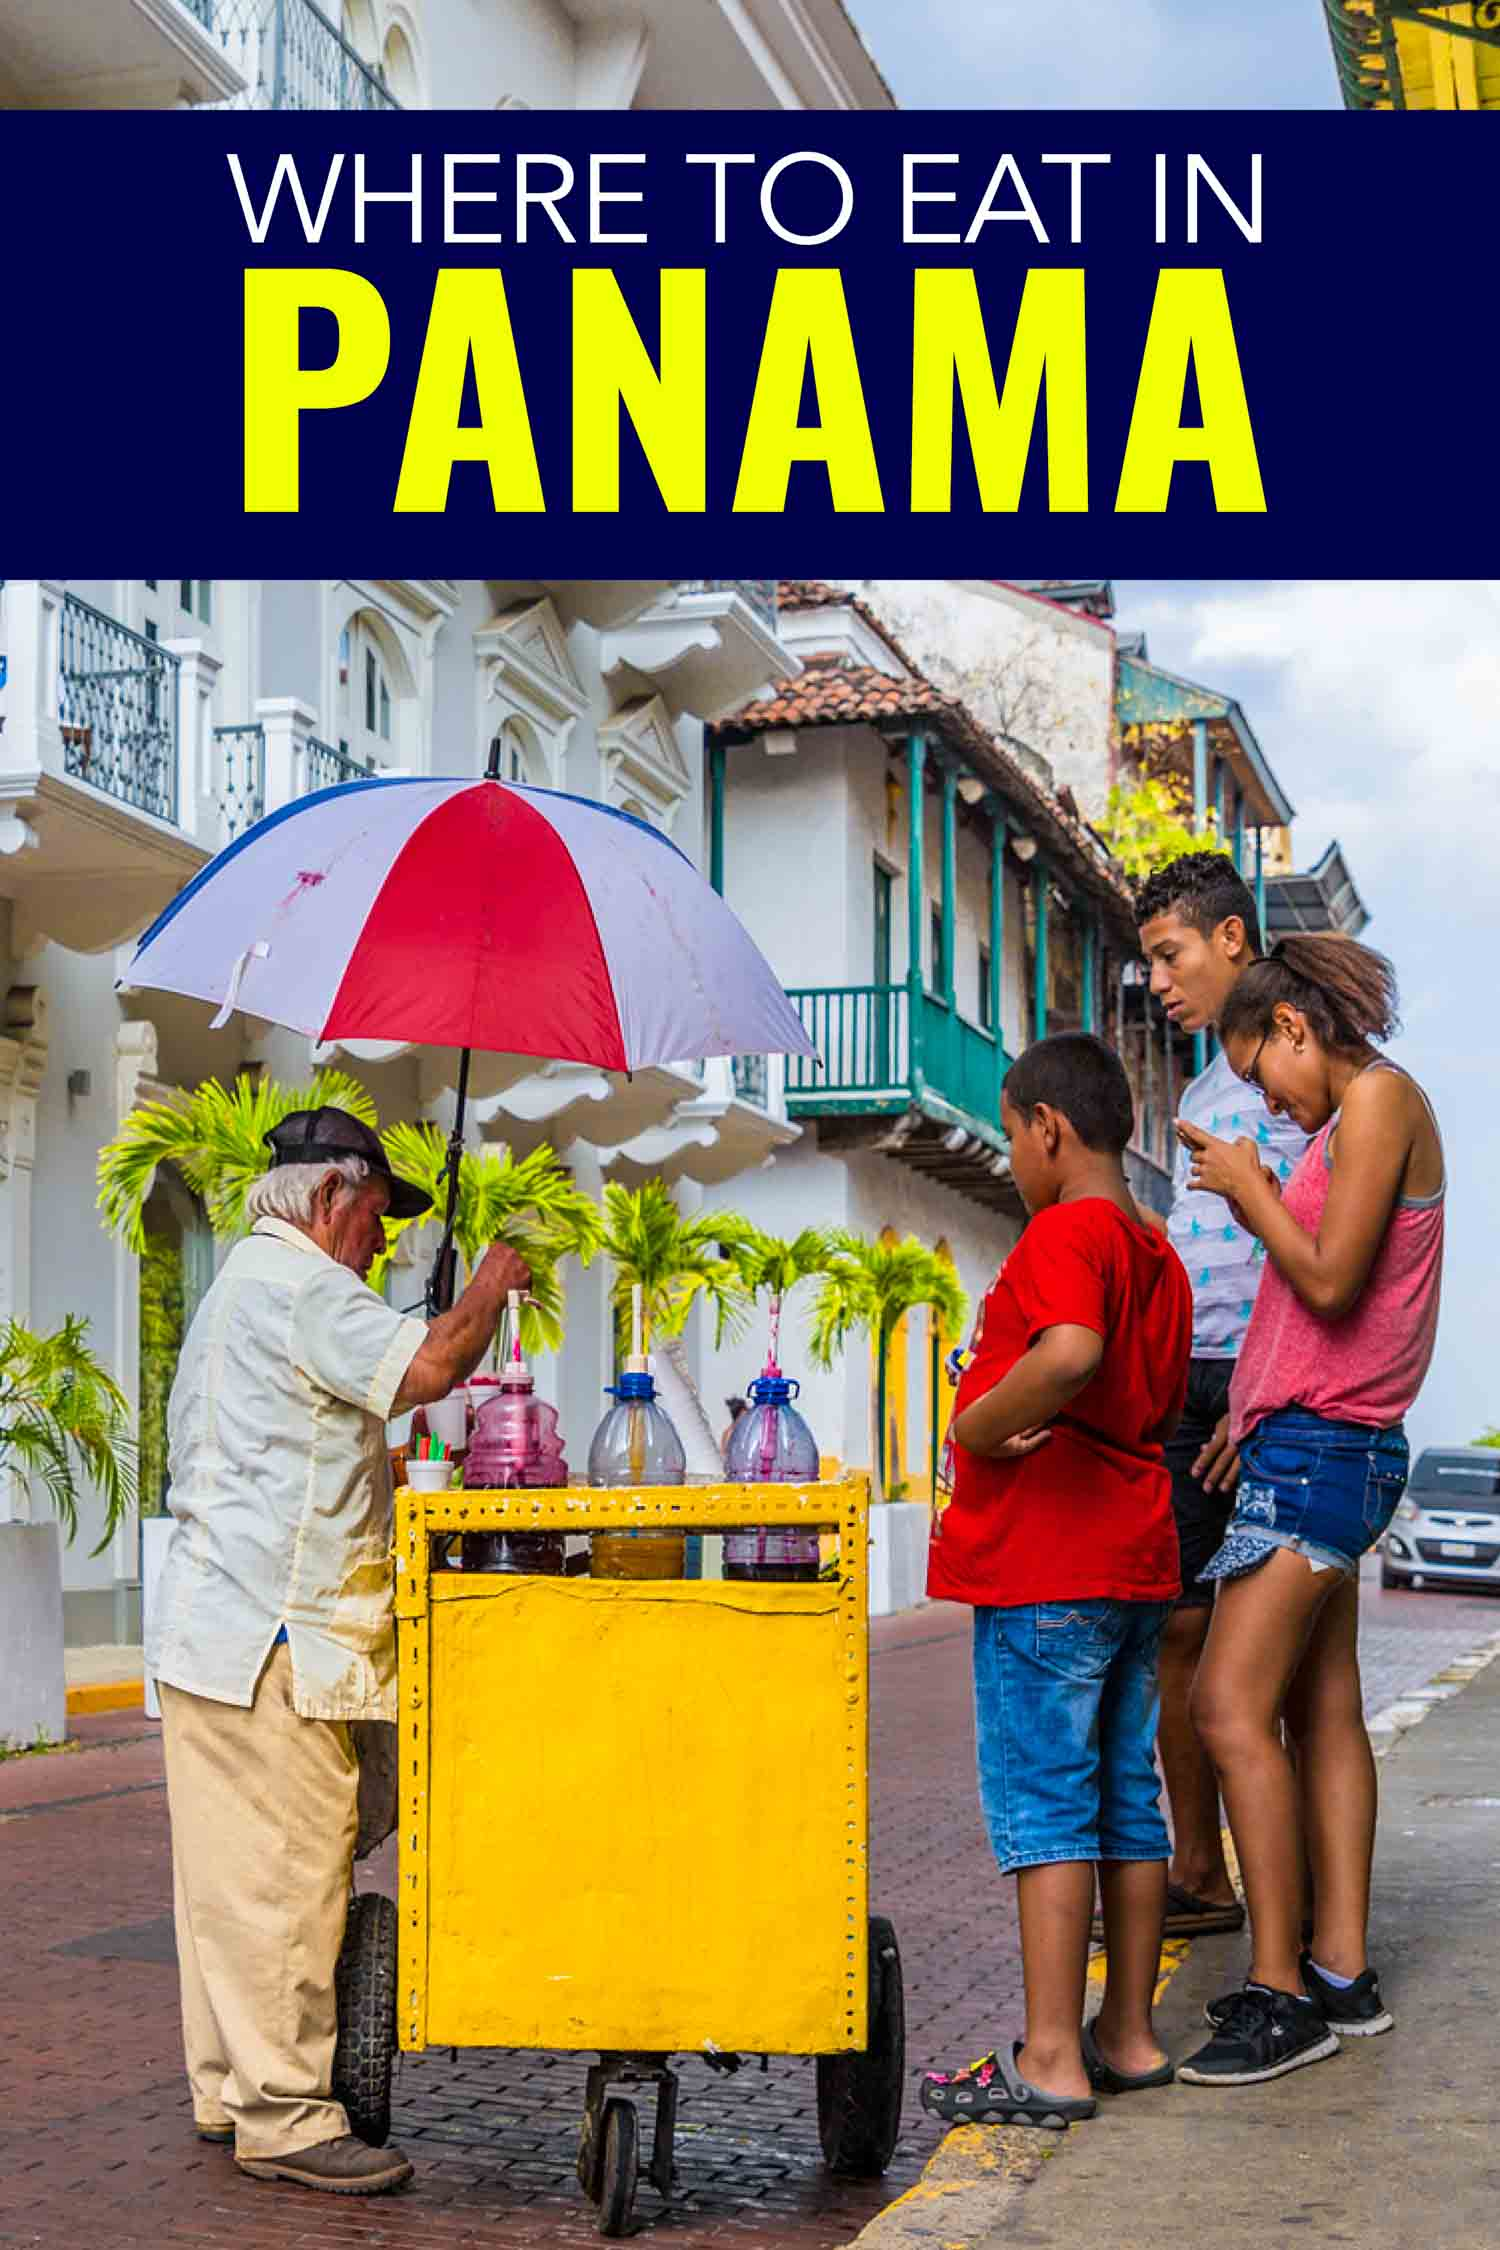 Panamanian food, what to drink and eat in Panama and where to find it. #Panama #Travel #CentralAmerica